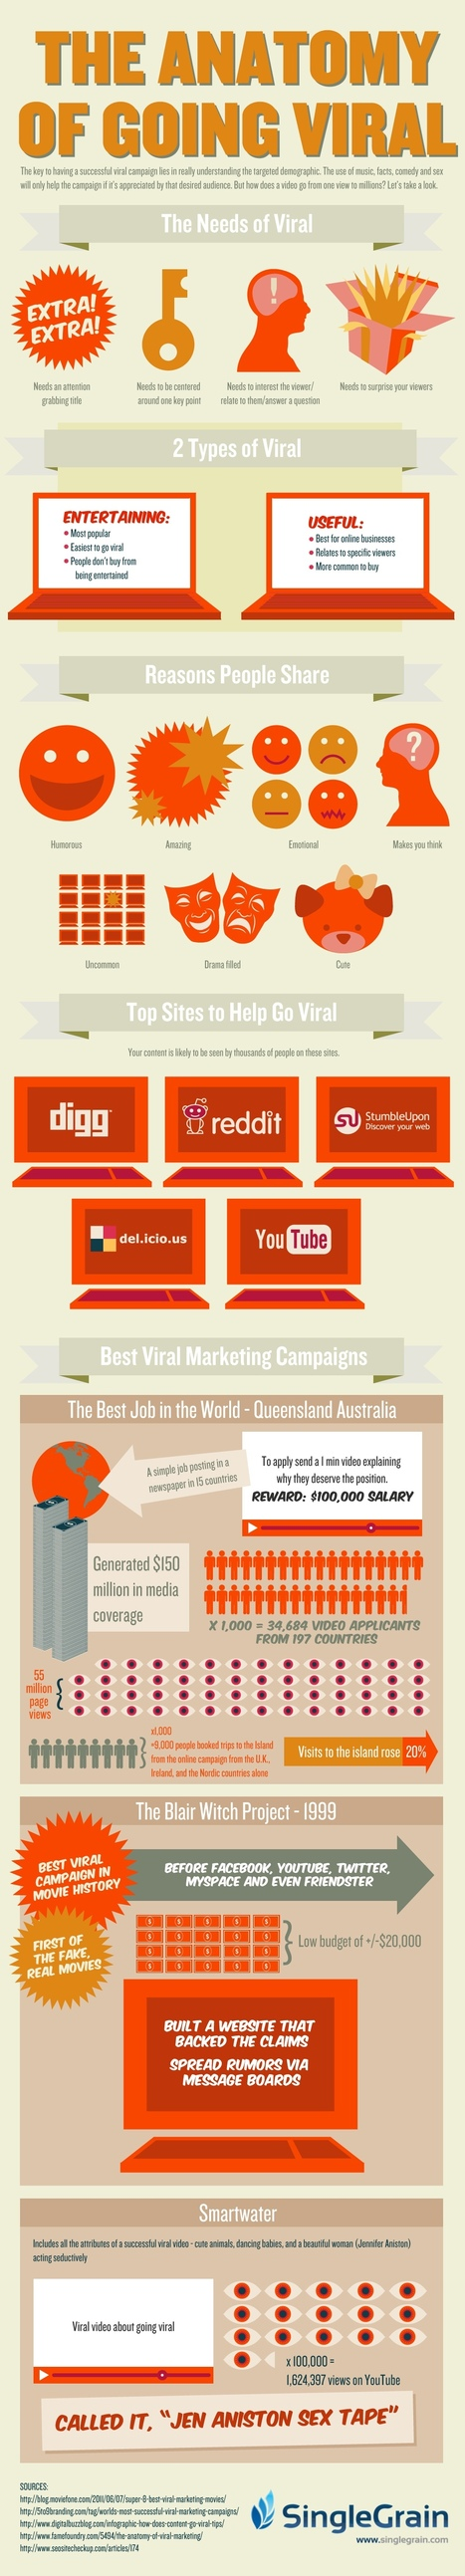 The Ultimate Guide For Creating Viral Content [Infographic] | Links sobre Marketing, SEO y Social Media | Scoop.it